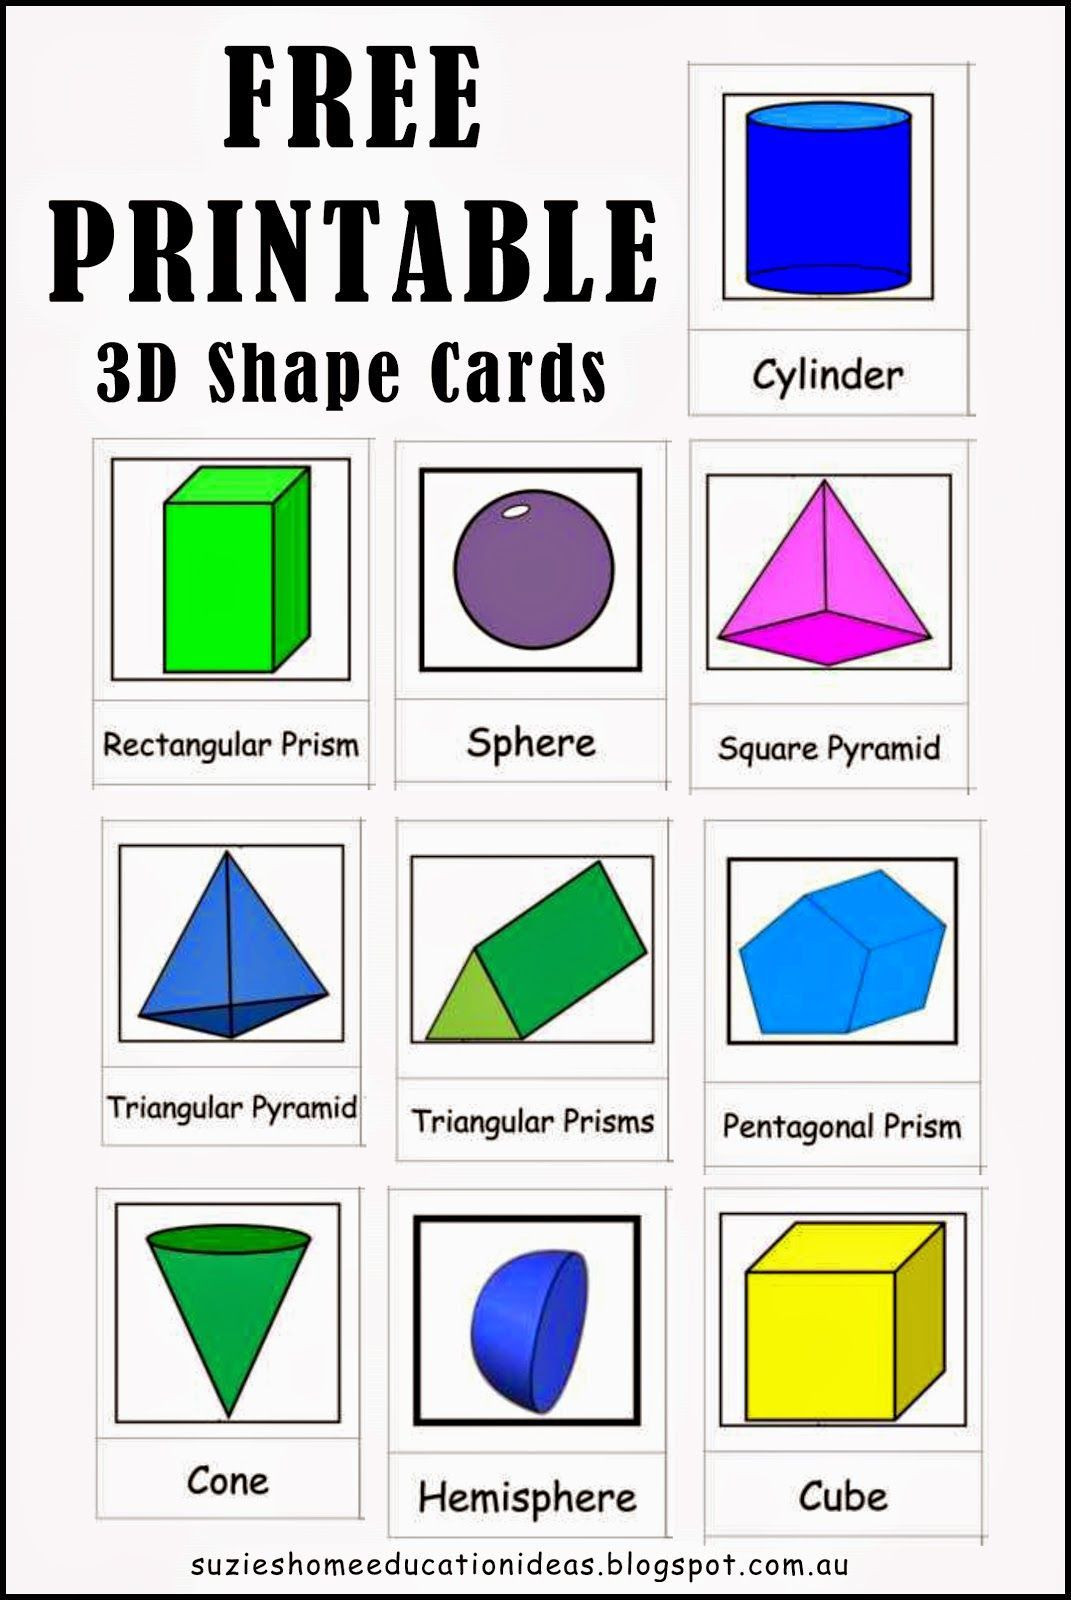 Free Printable 3d Shapes Worksheets Pin On Printables Template Worksheets